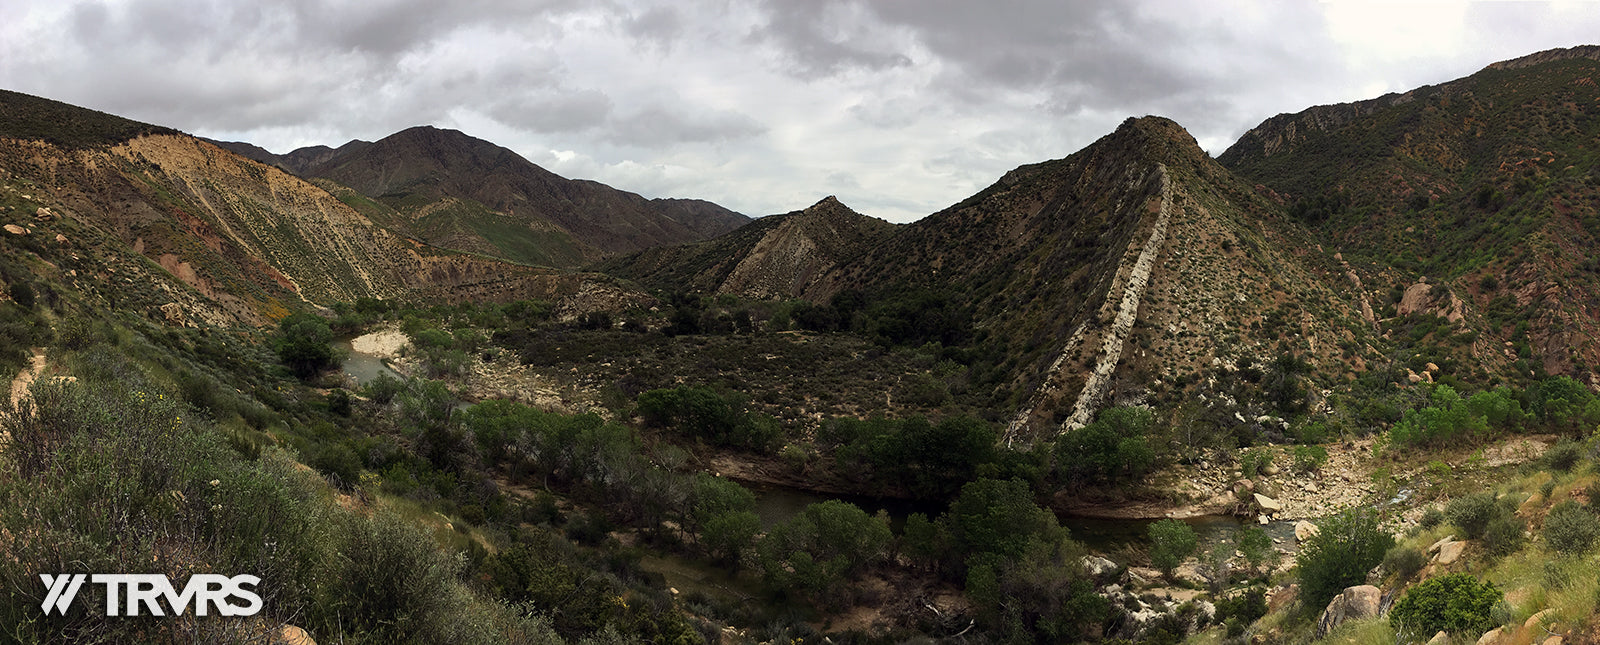 Sespe River Trail Los Padres National Forest | TRVRS APPAREL